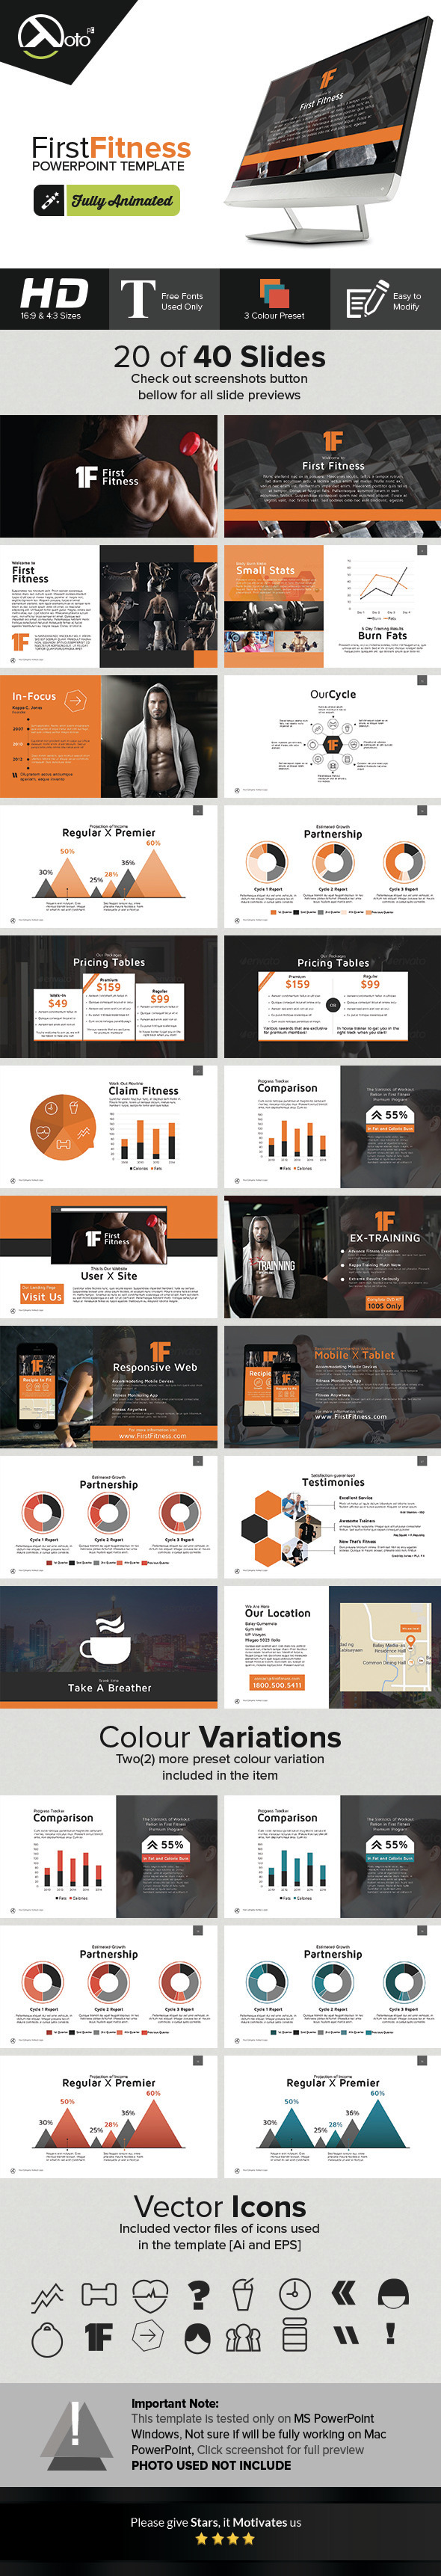 First Fitness Gym & Product Company Presentation - PowerPoint Templates Presentation Templates